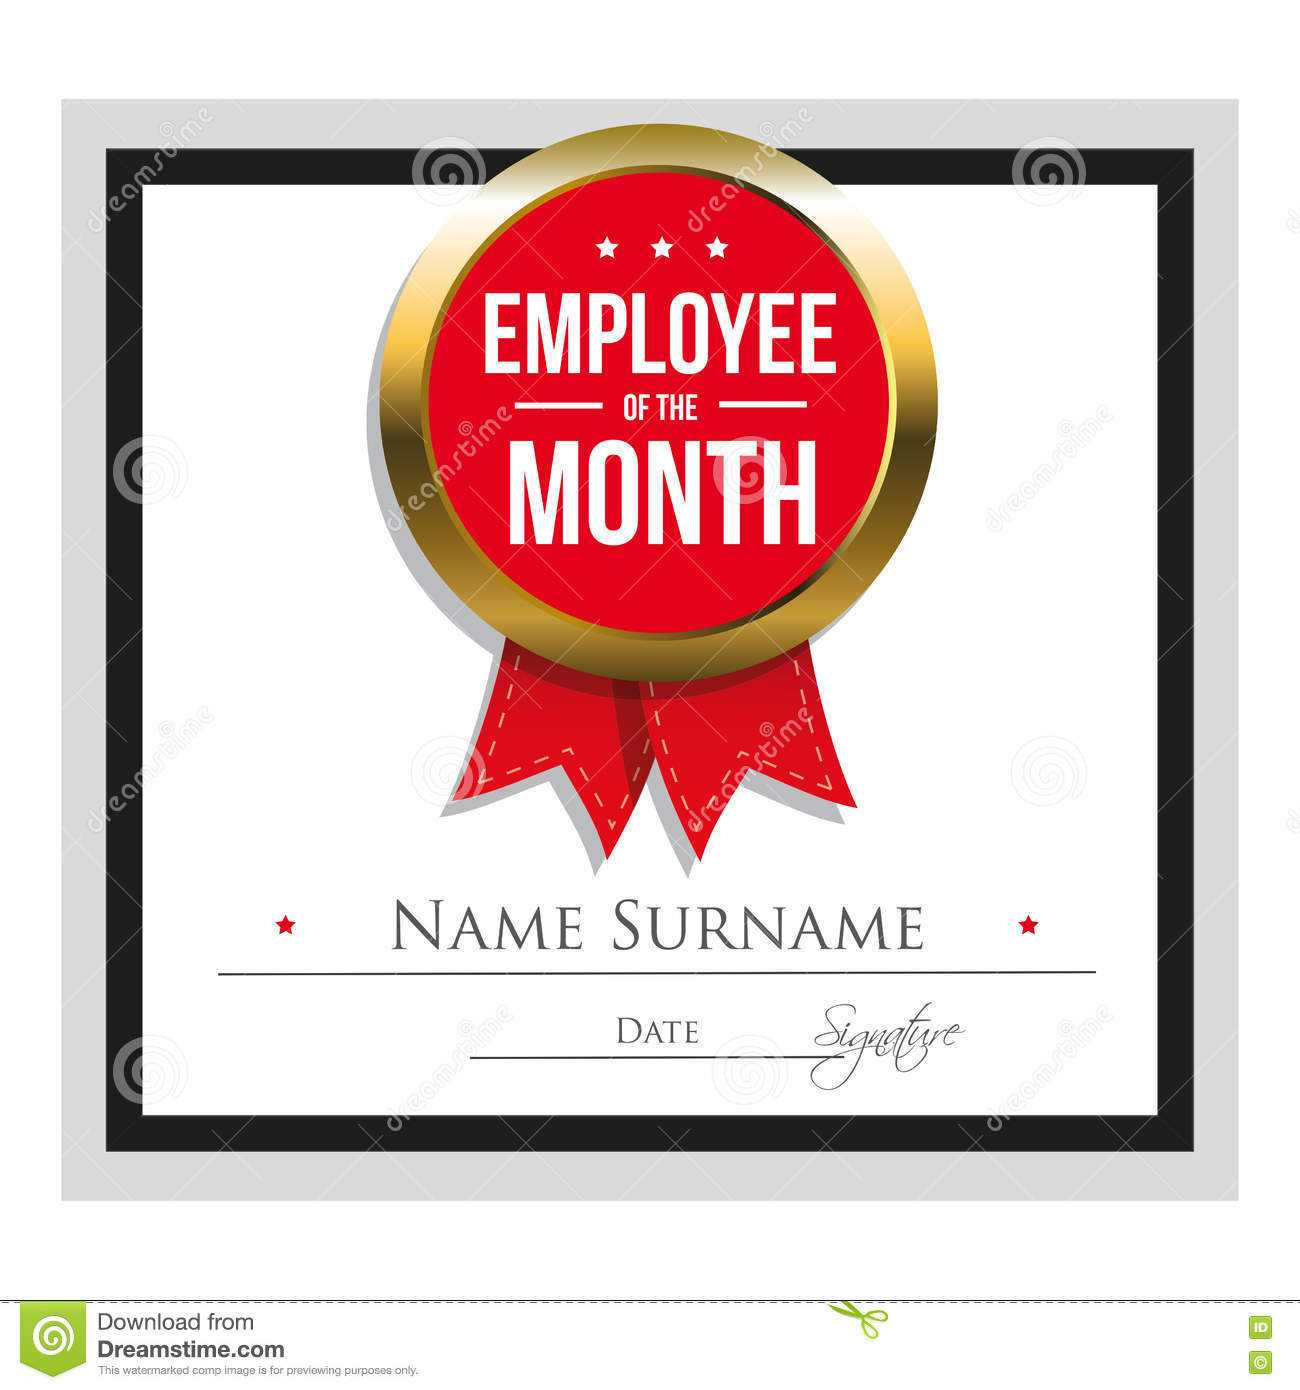 Employee Of The Month Certificate Template Stock Vector pertaining to Employee Of The Month Certificate Templates